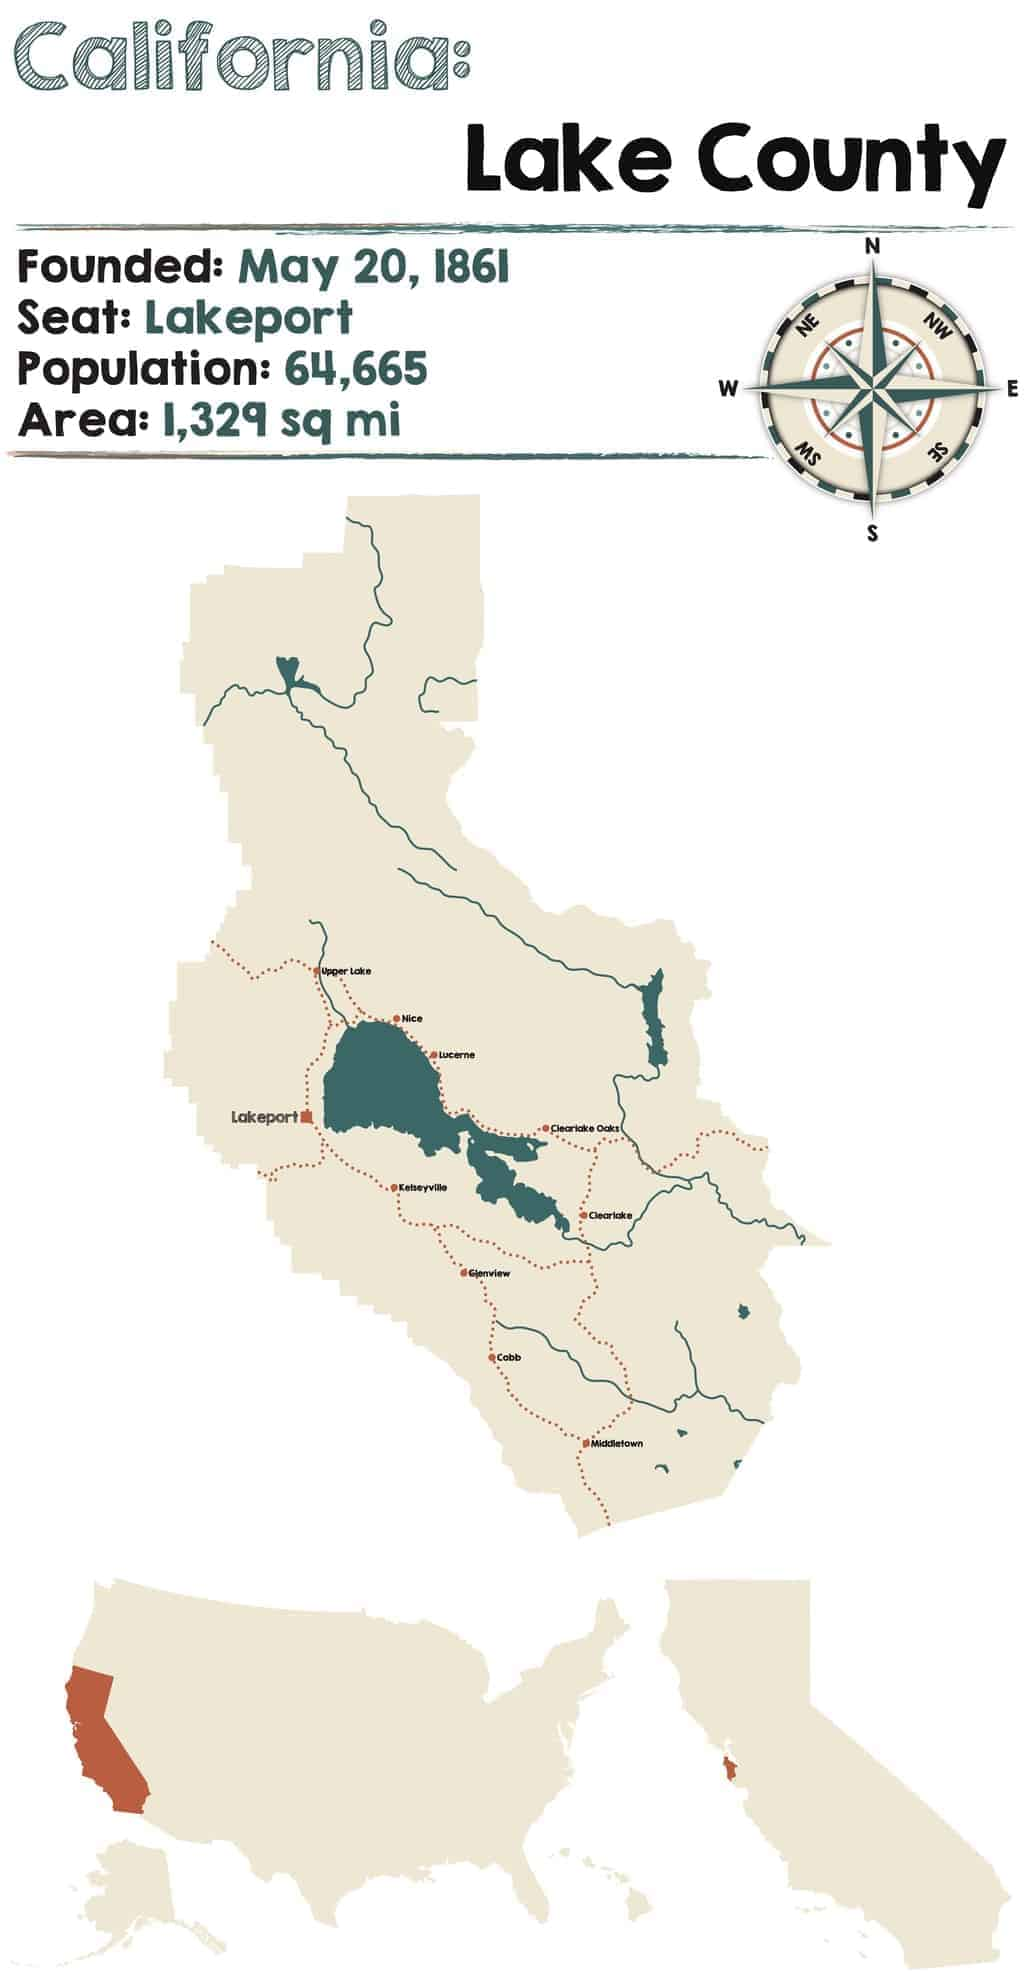 Lake County CA Wine Region Map & Best Wineries Itinerary | Winetraveler.com